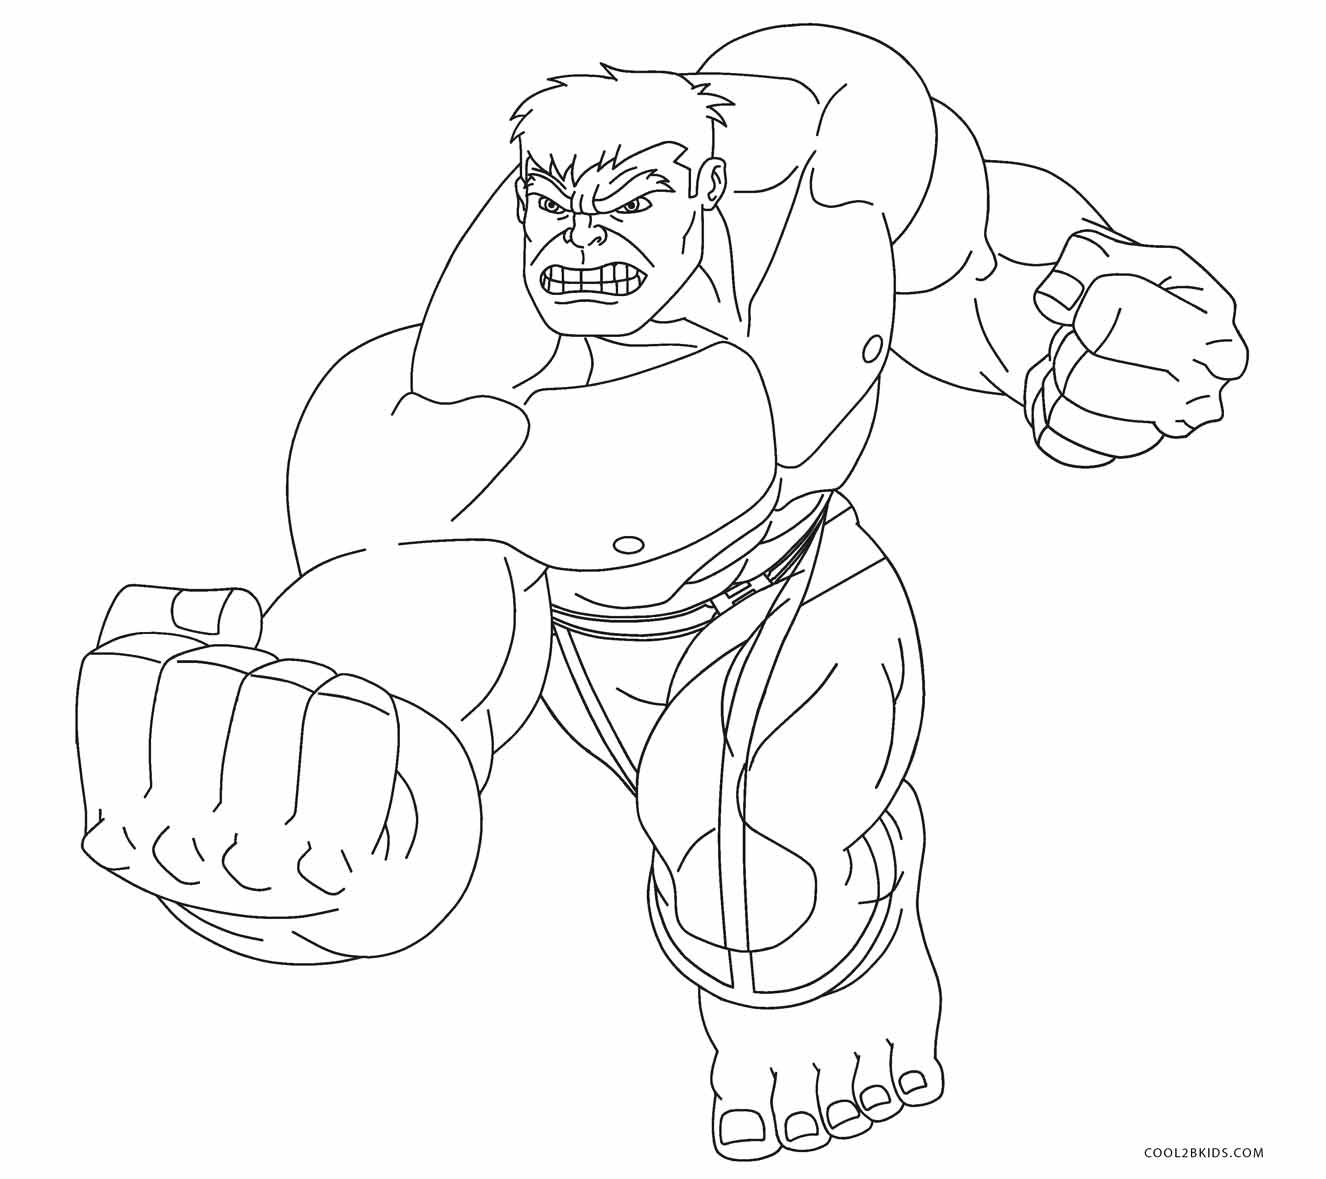 Incredible hulk coloring book pages - Hulk Smash Coloring Pages